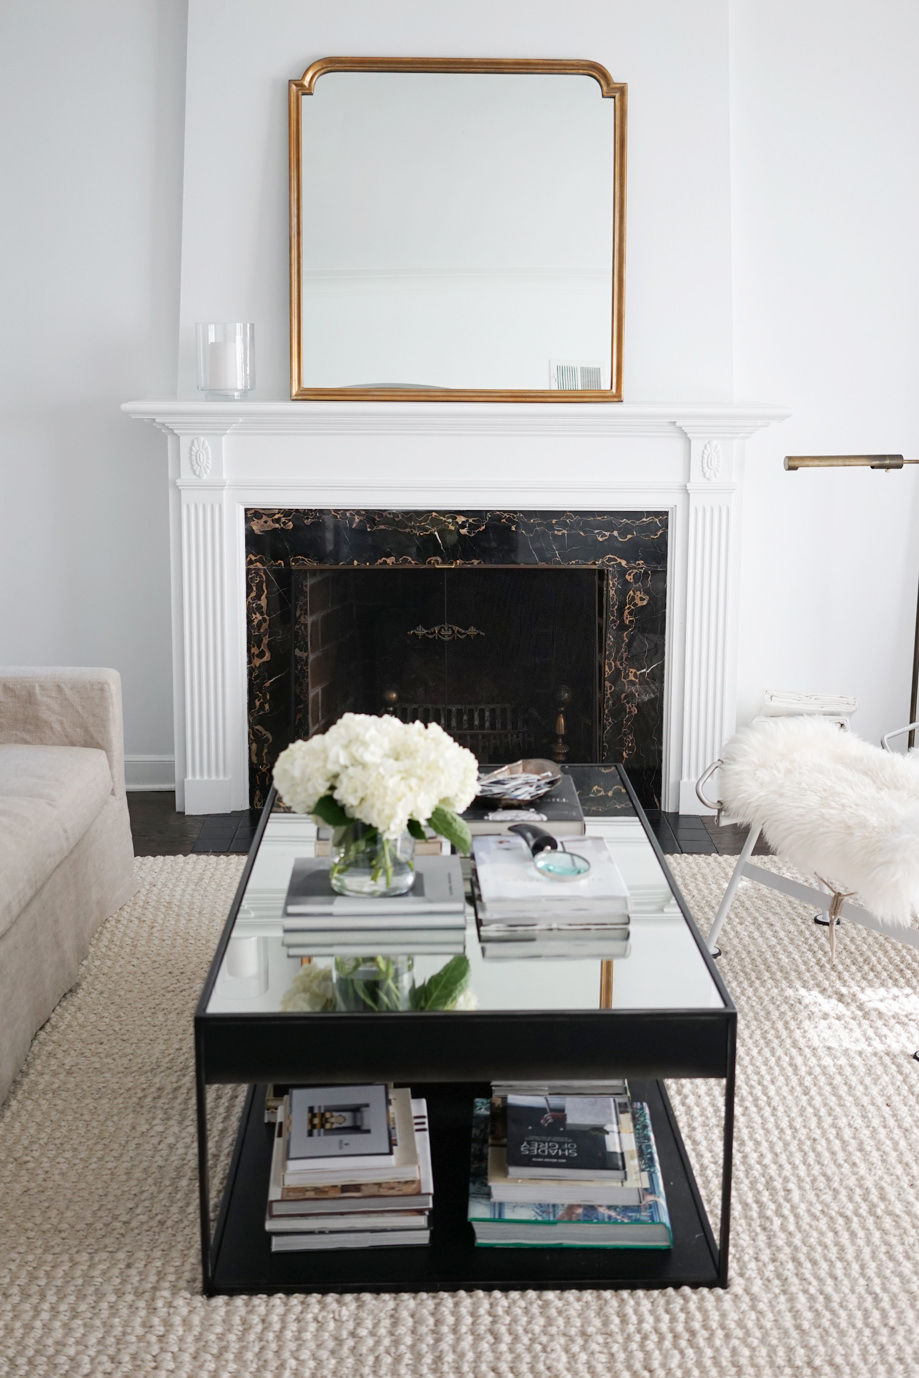 My Search For The Perfect Jute Rug Danielle Moss